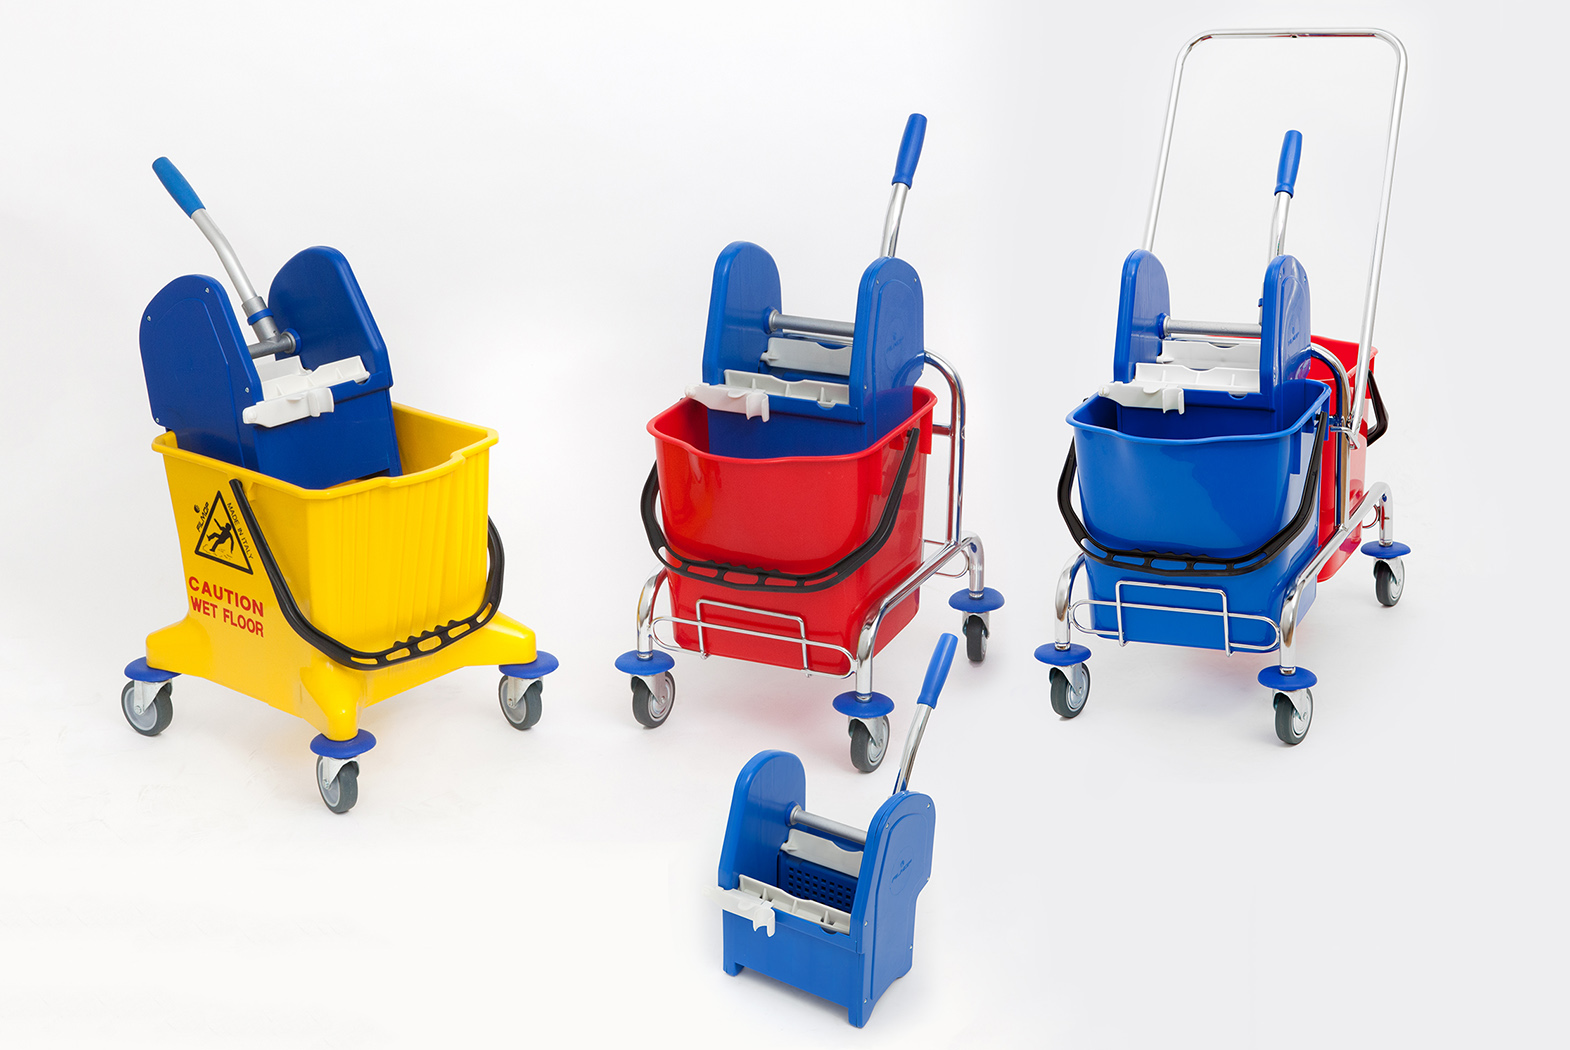 Mop trolleys